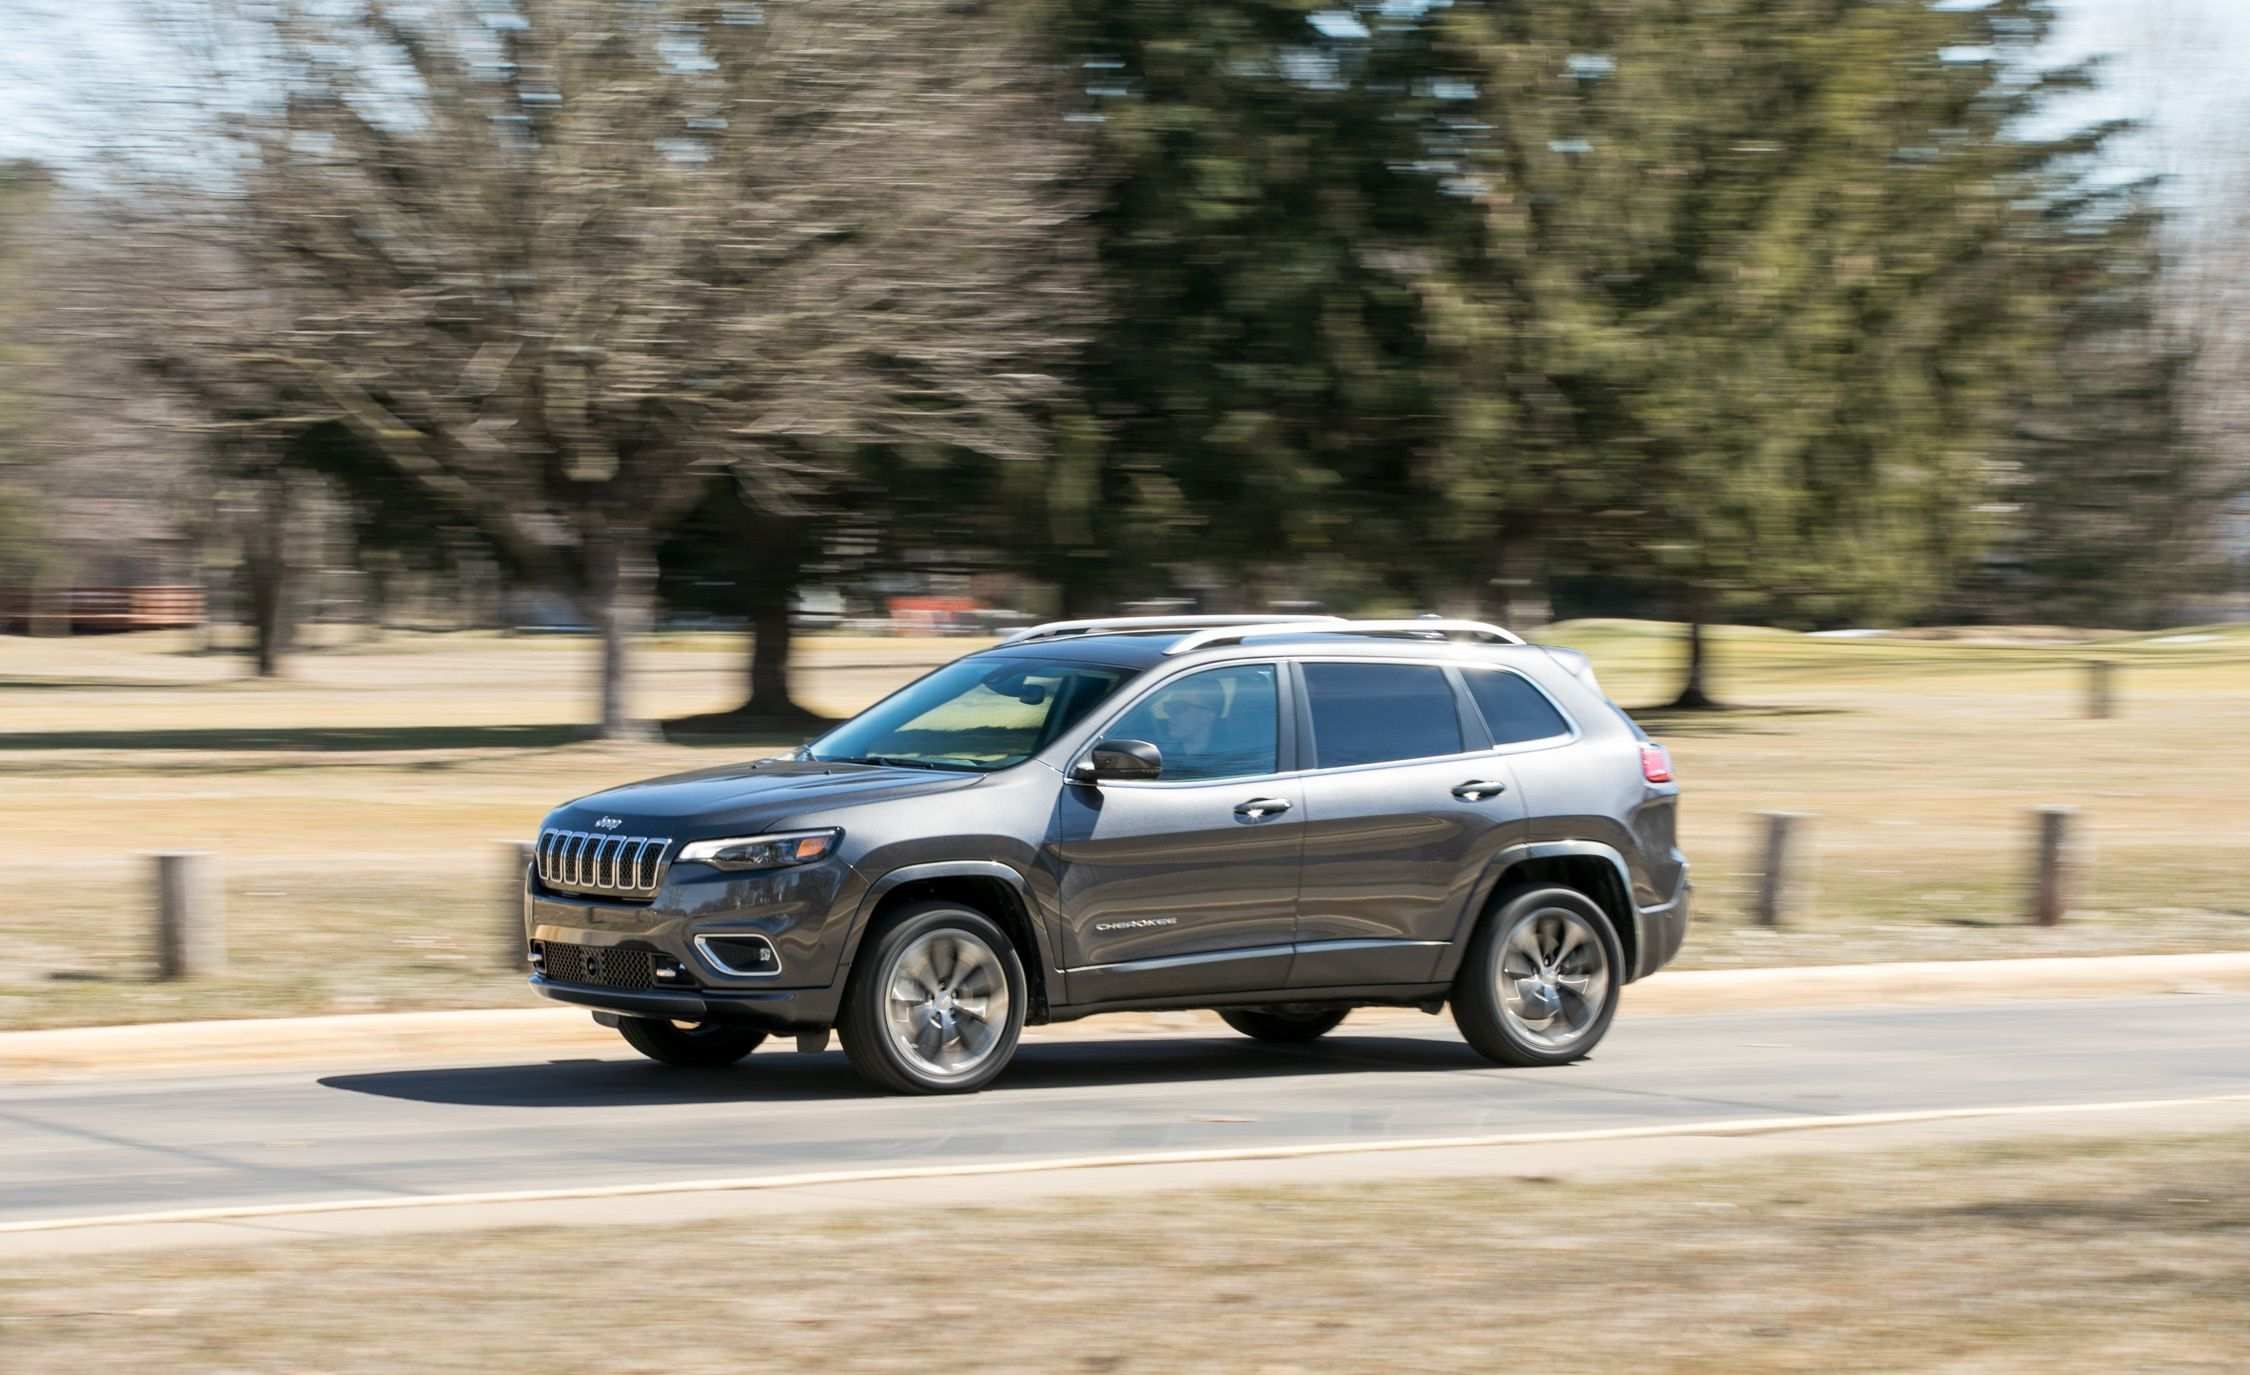 29 The Best Cherokee Jeep 2019 Redesign And Concept New Concept for Best Cherokee Jeep 2019 Redesign And Concept